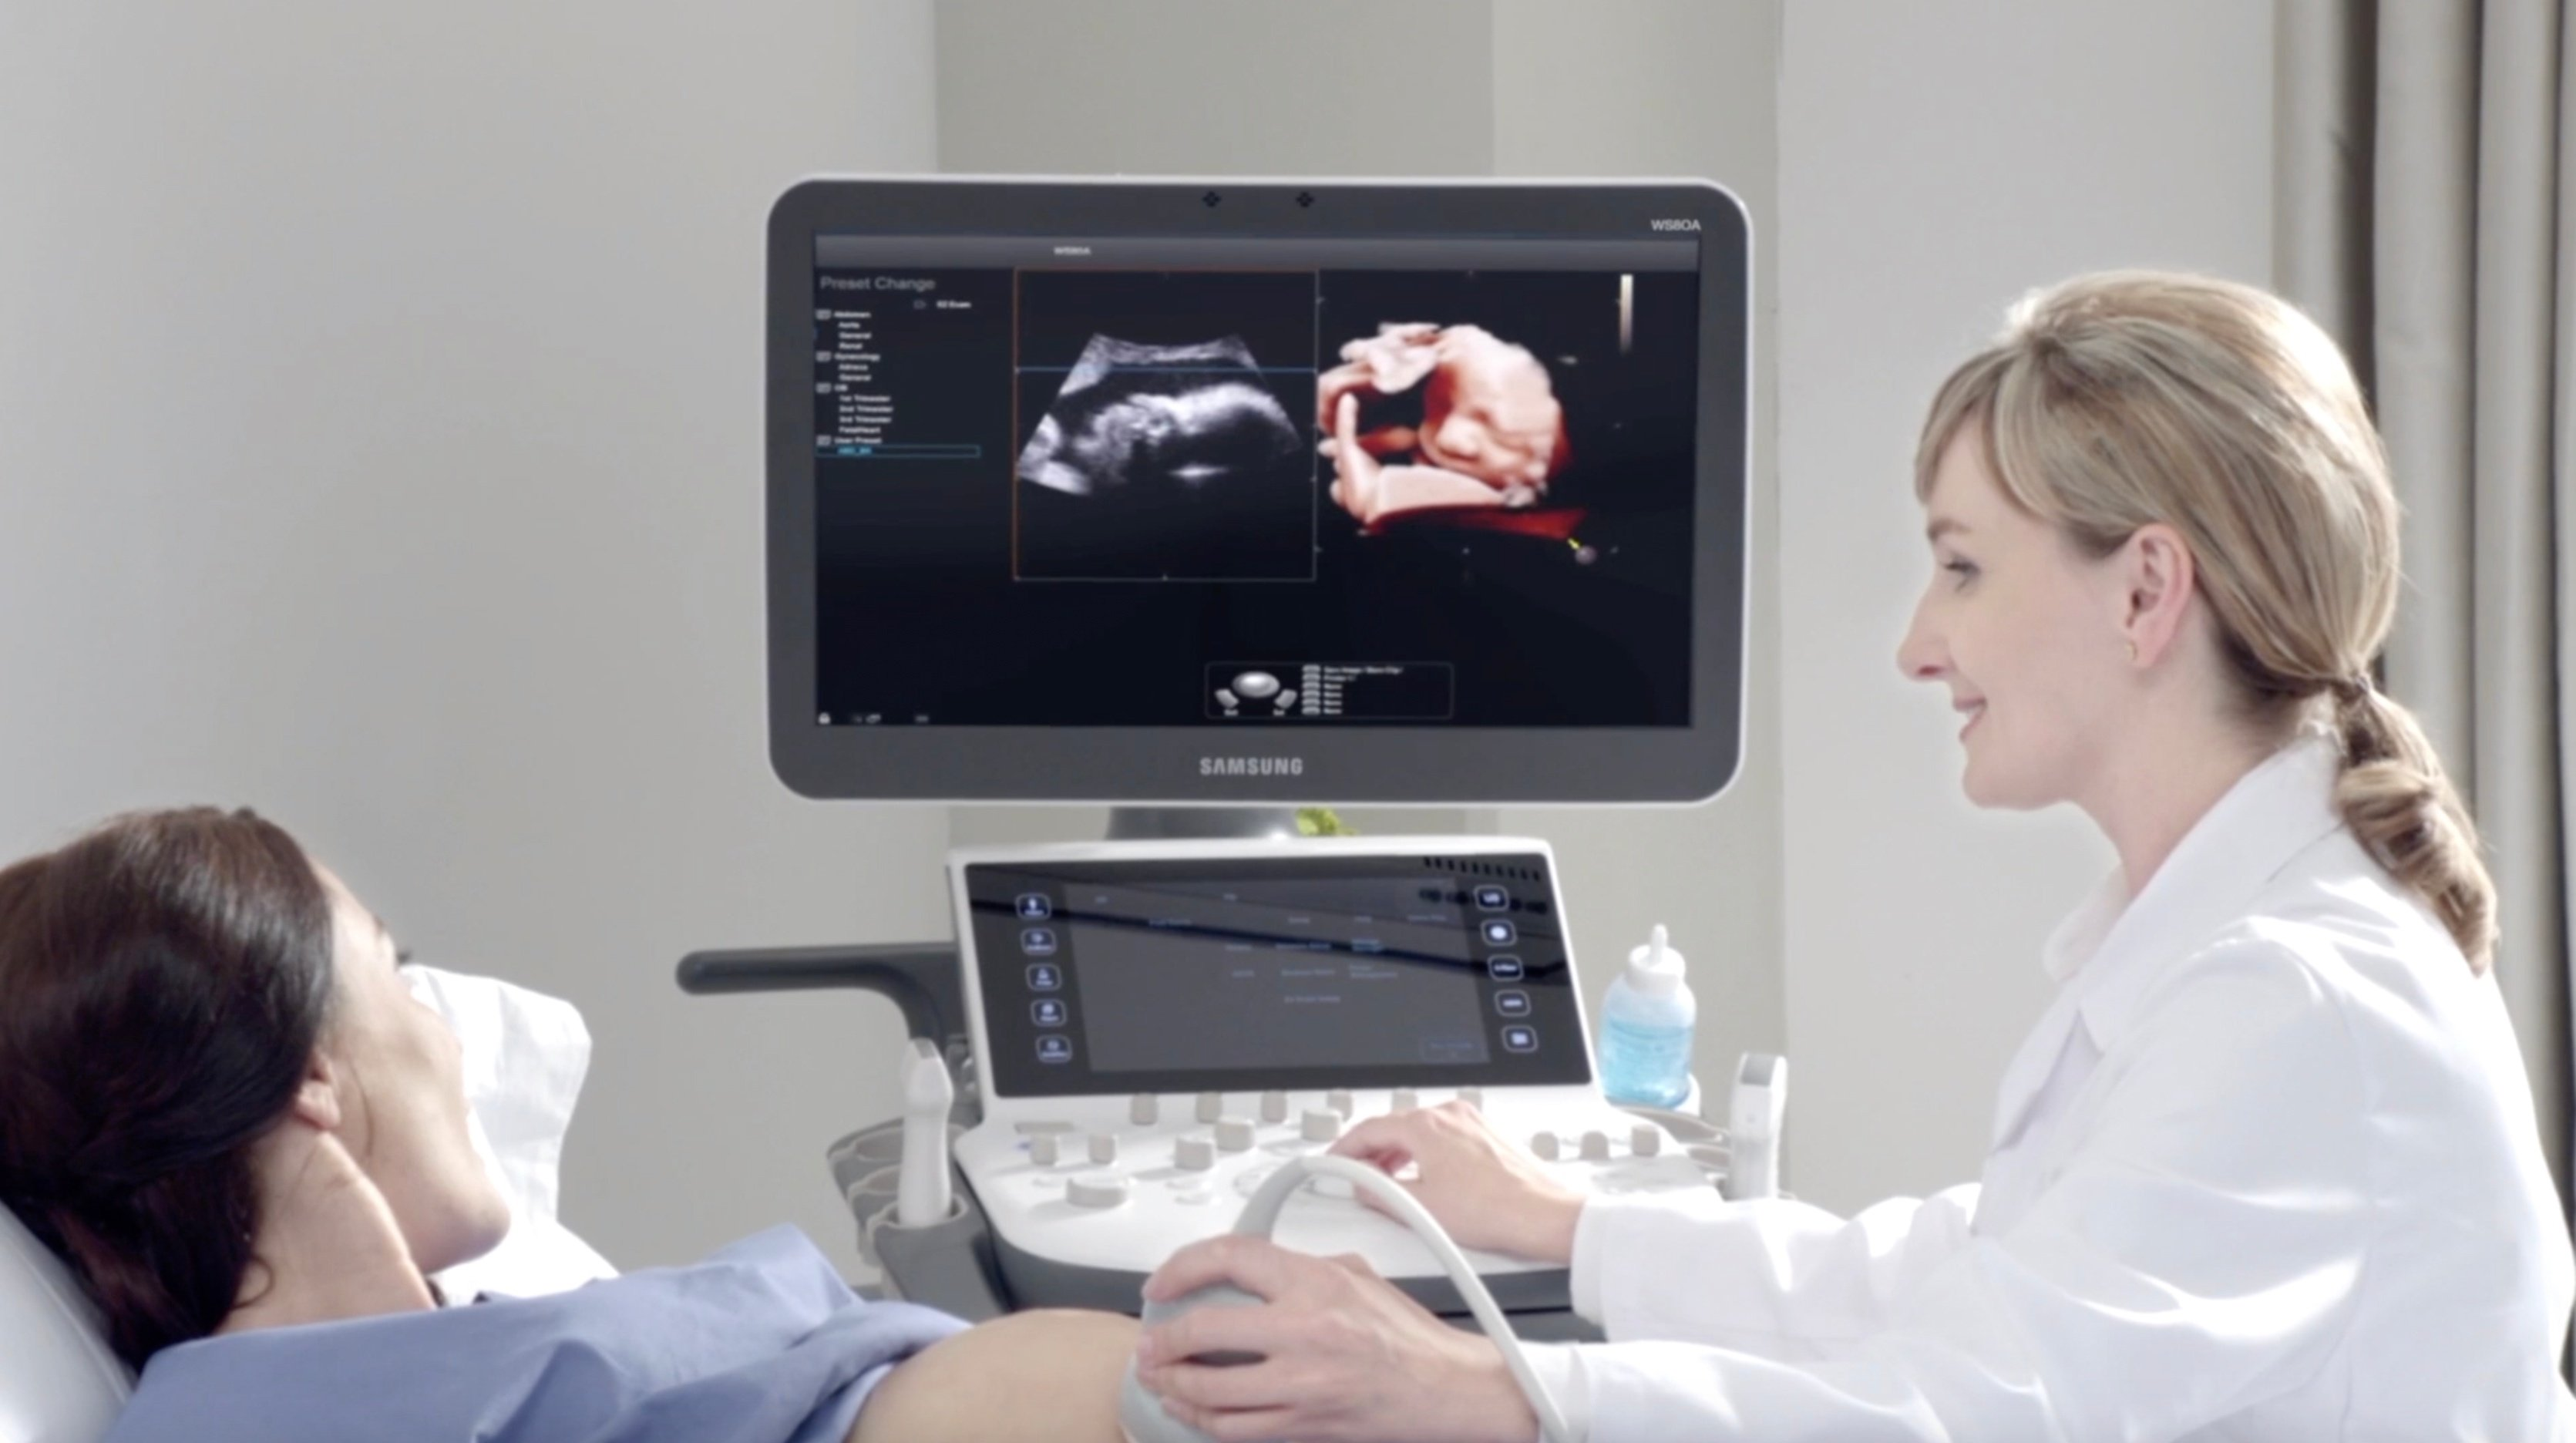 Samsung Healthcare Ultrasound Video